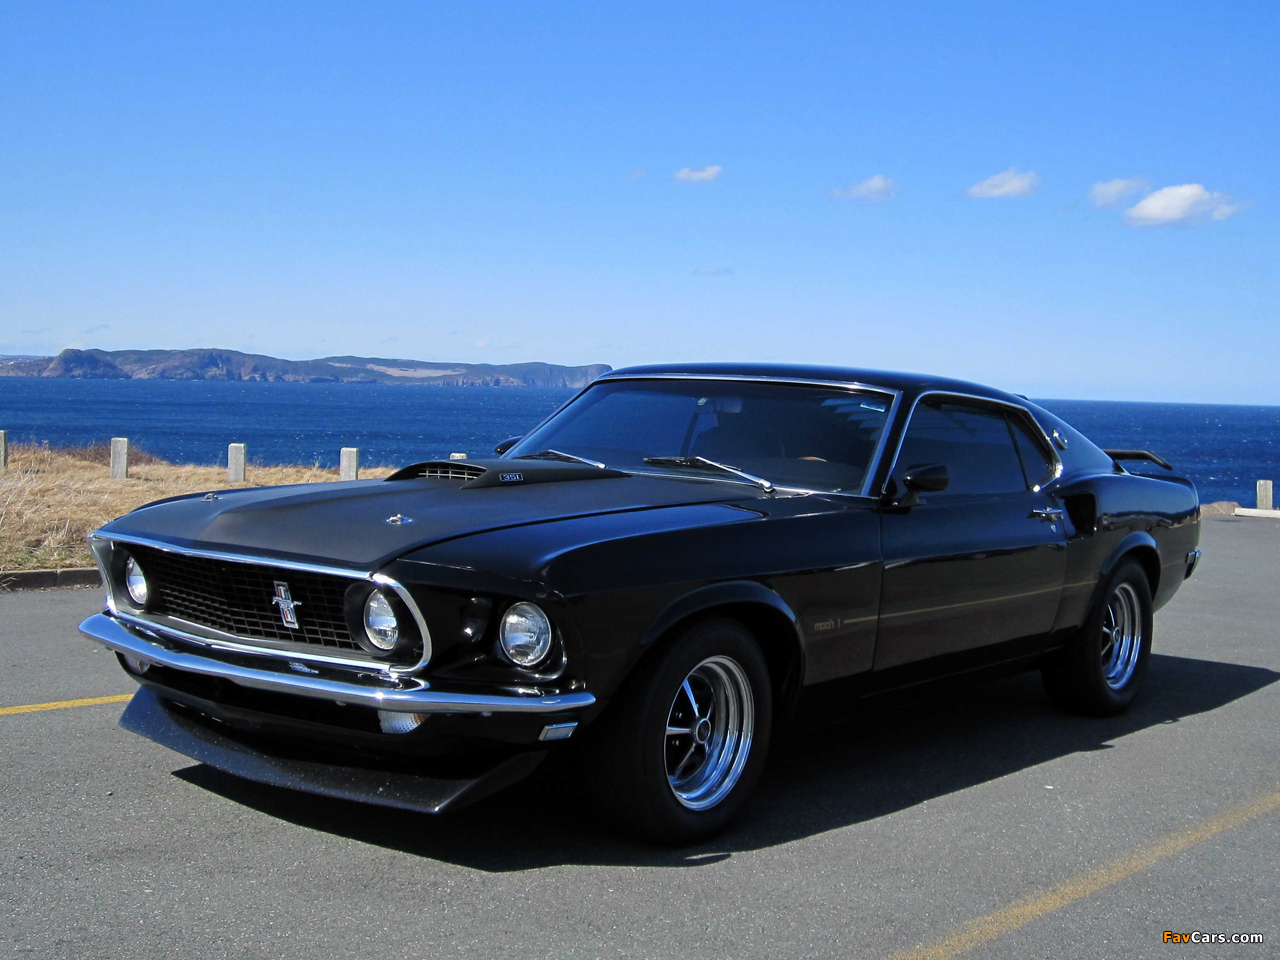 Mustang Mach 1 1969 Images 1280x960